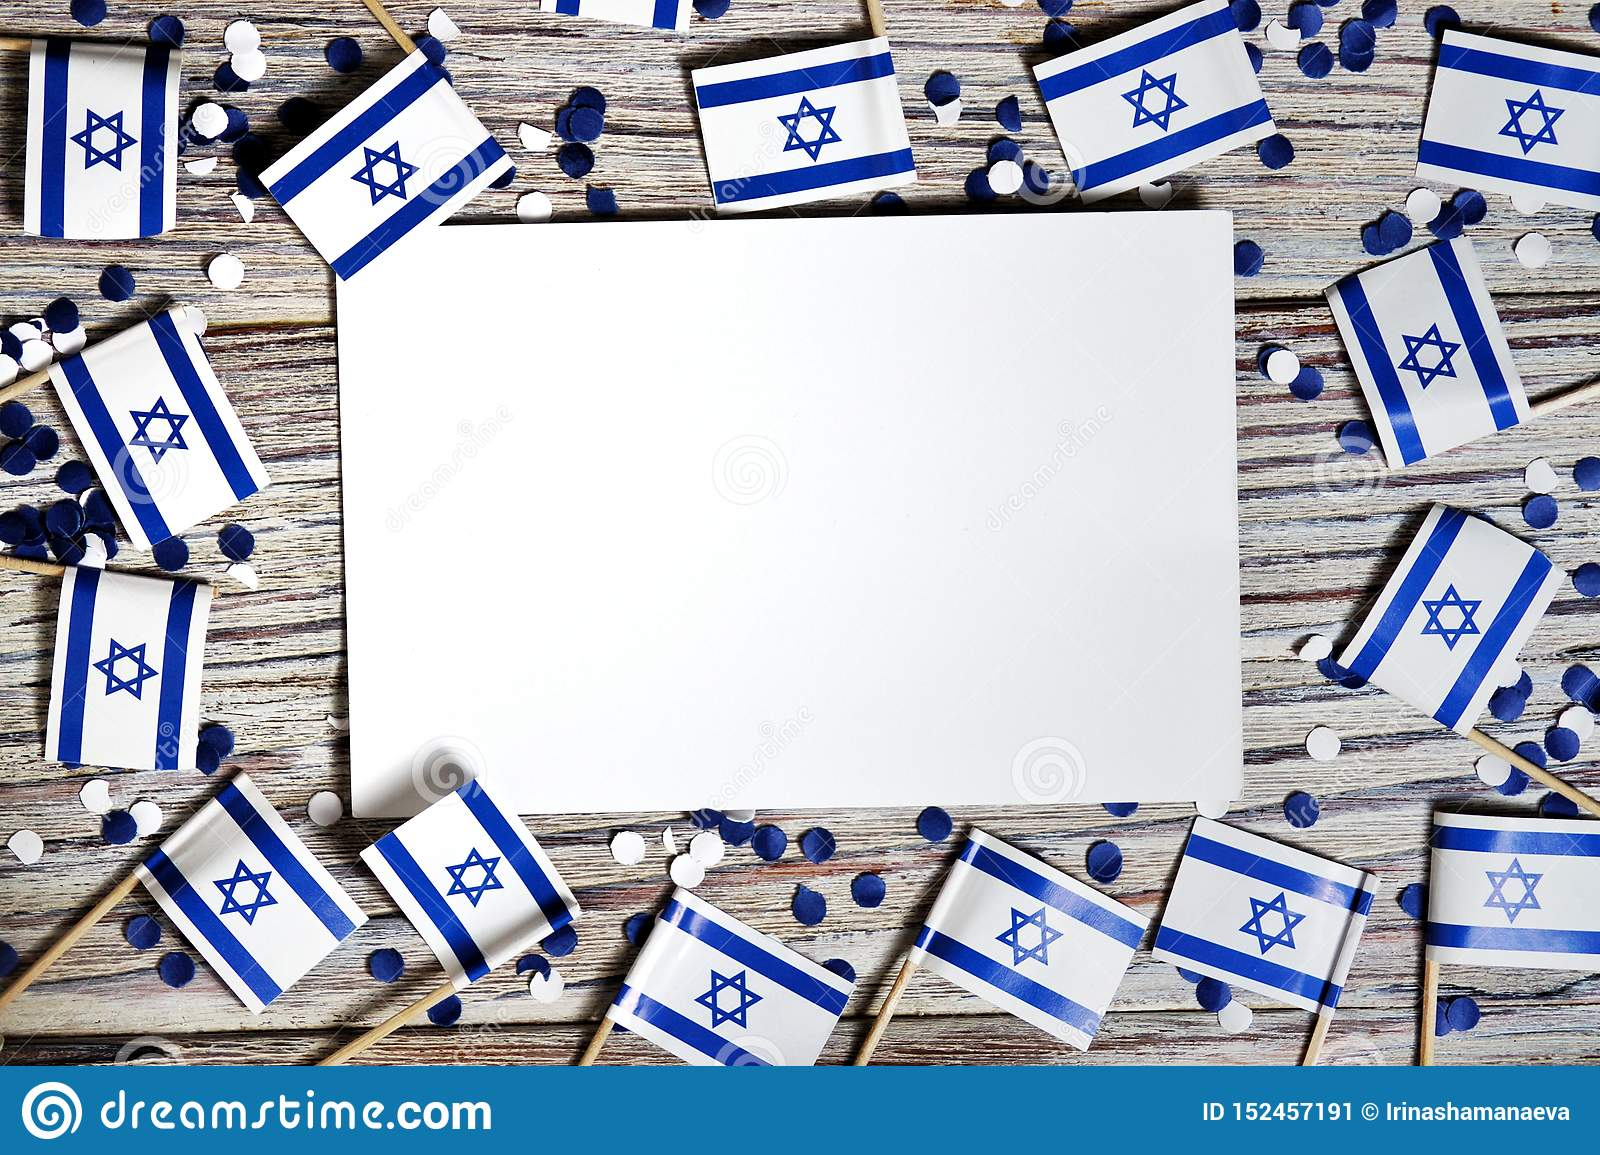 Israel Independence Day April 29 White Blue